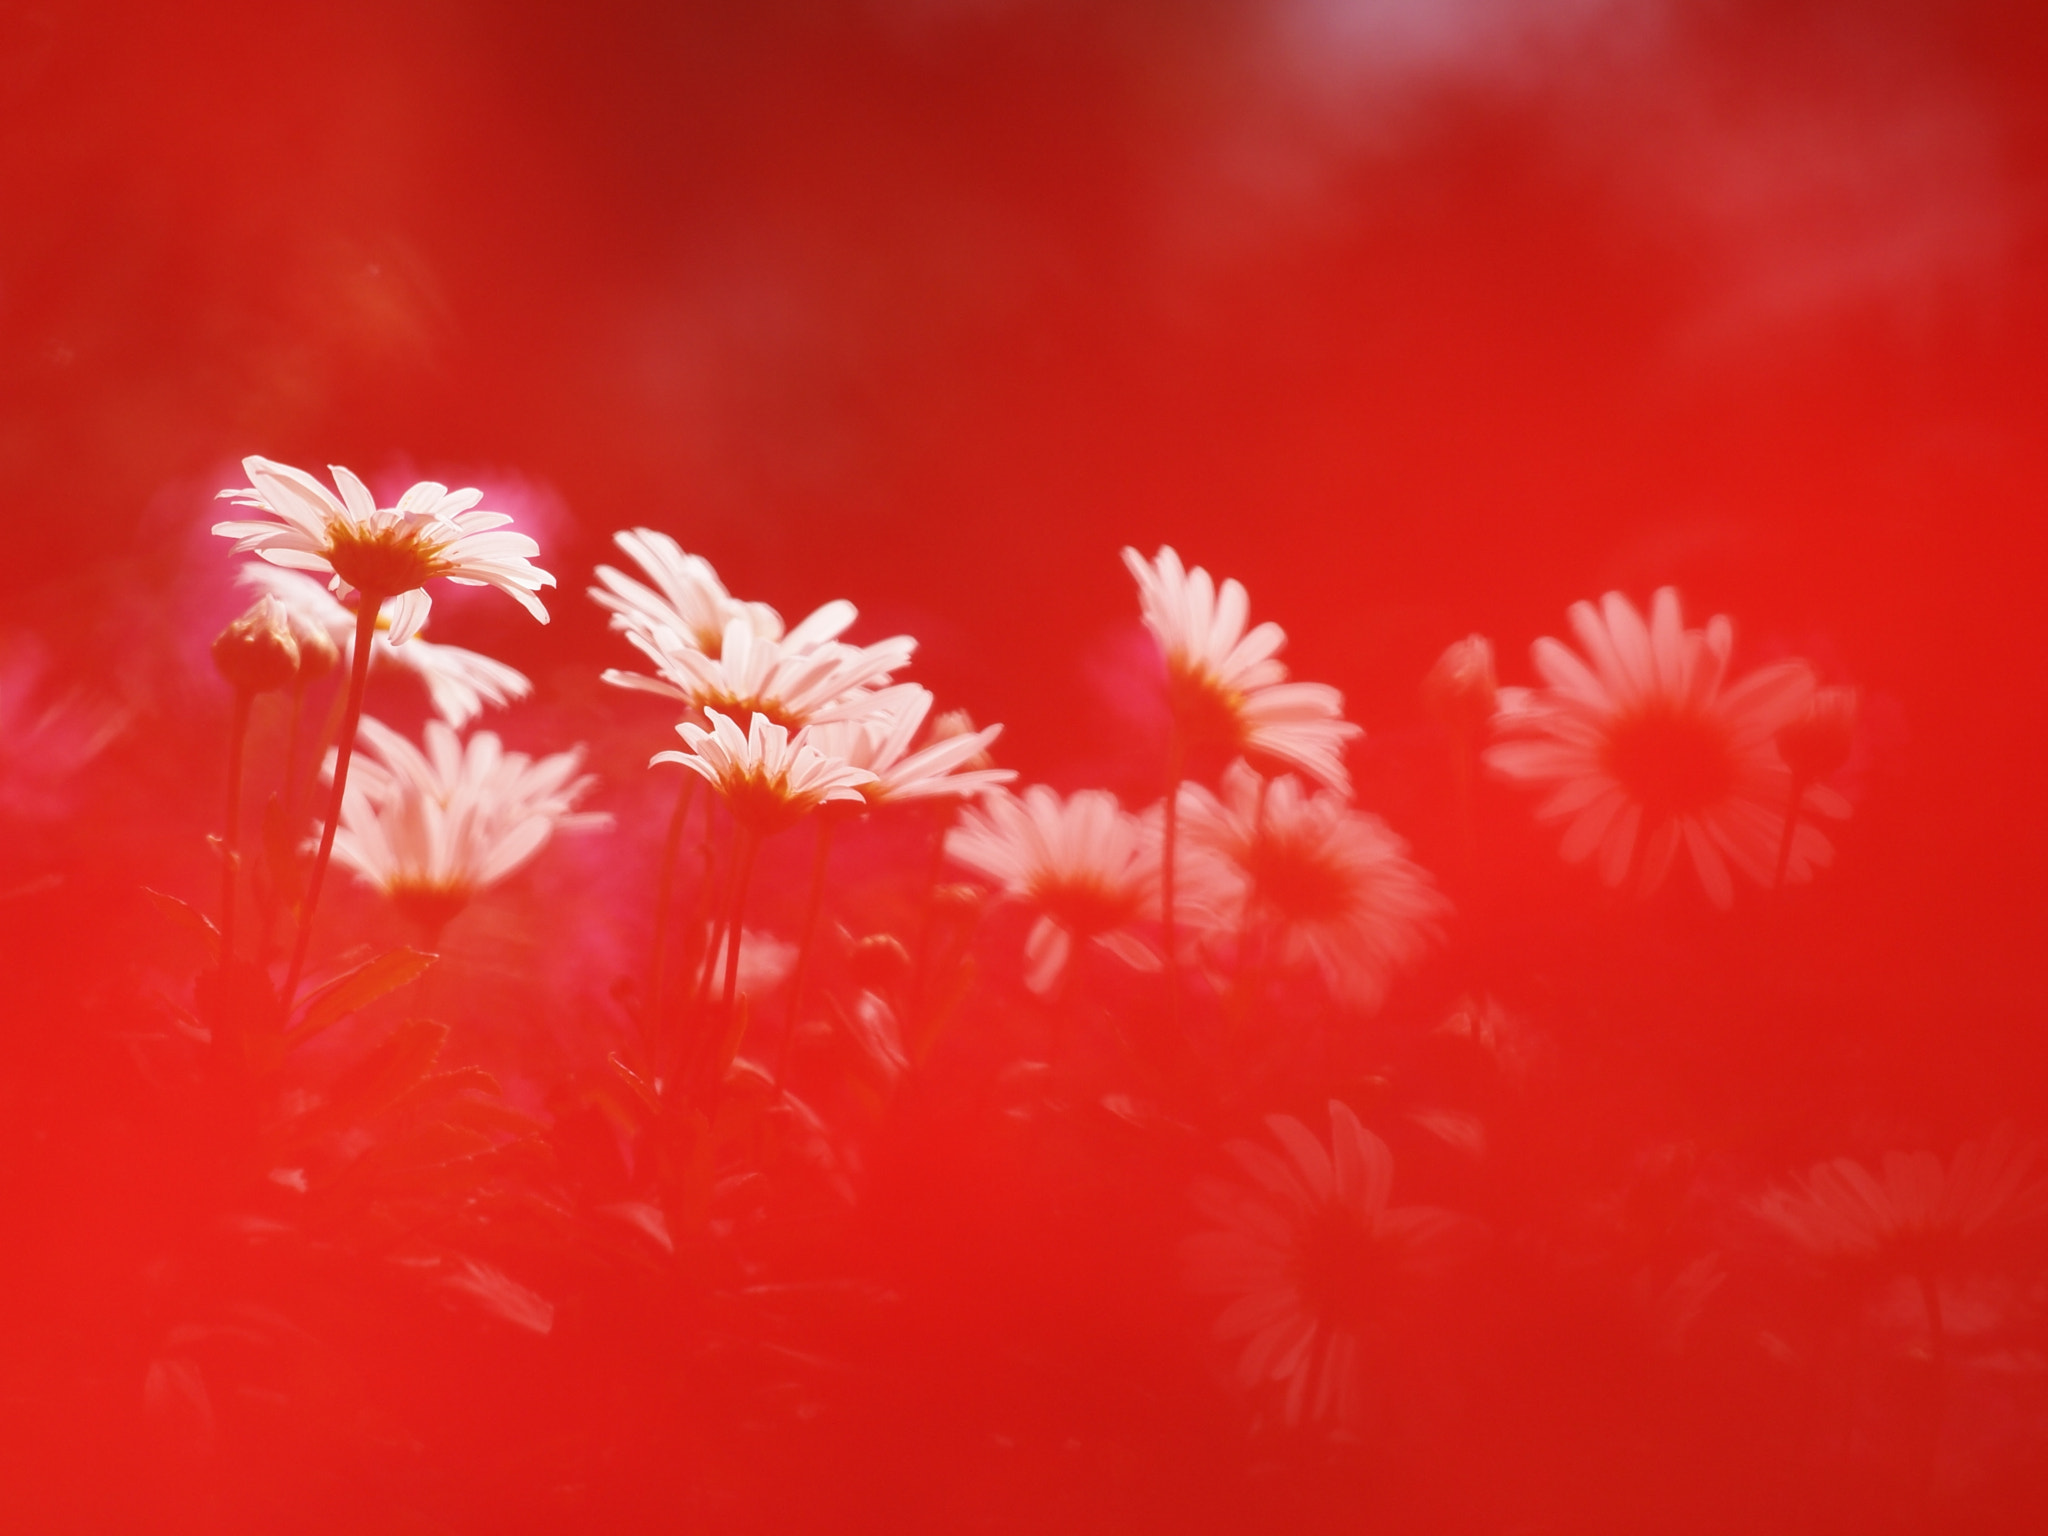 Photograph Passion by Kaz Watanabe on 500px